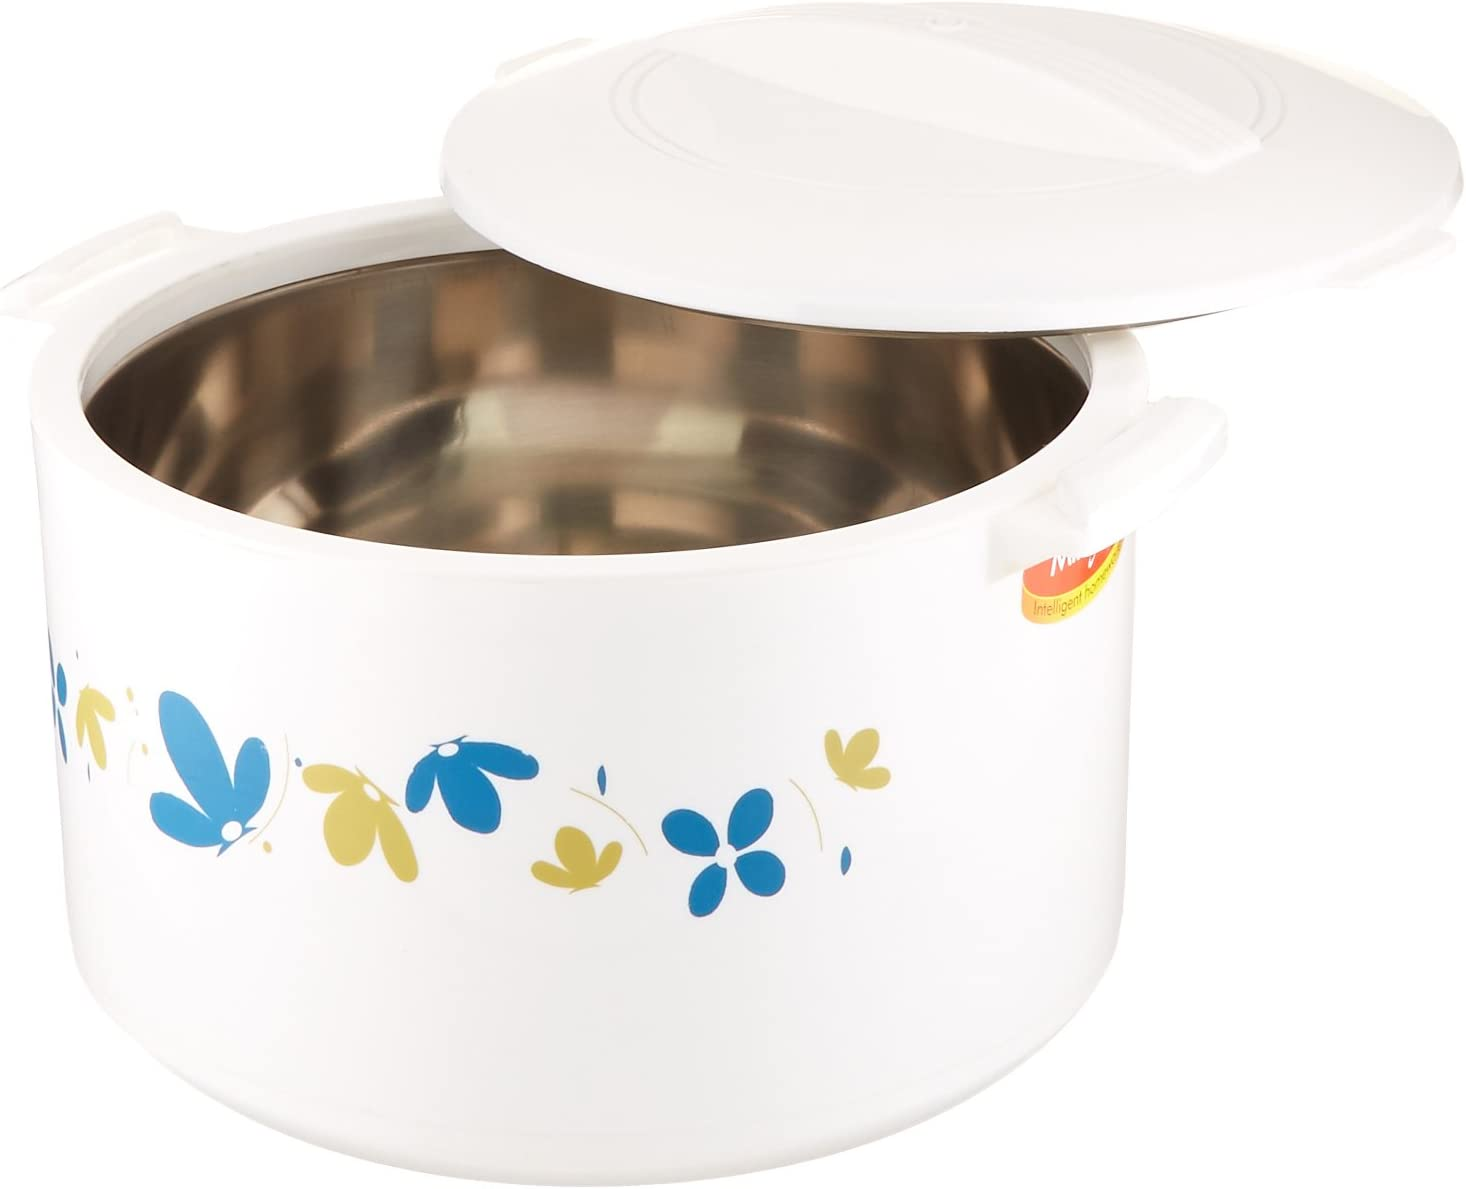 Milton Treat 10 L Insulated Hot Pot Keep Warm/Cold Thermo Casserole, Small, White